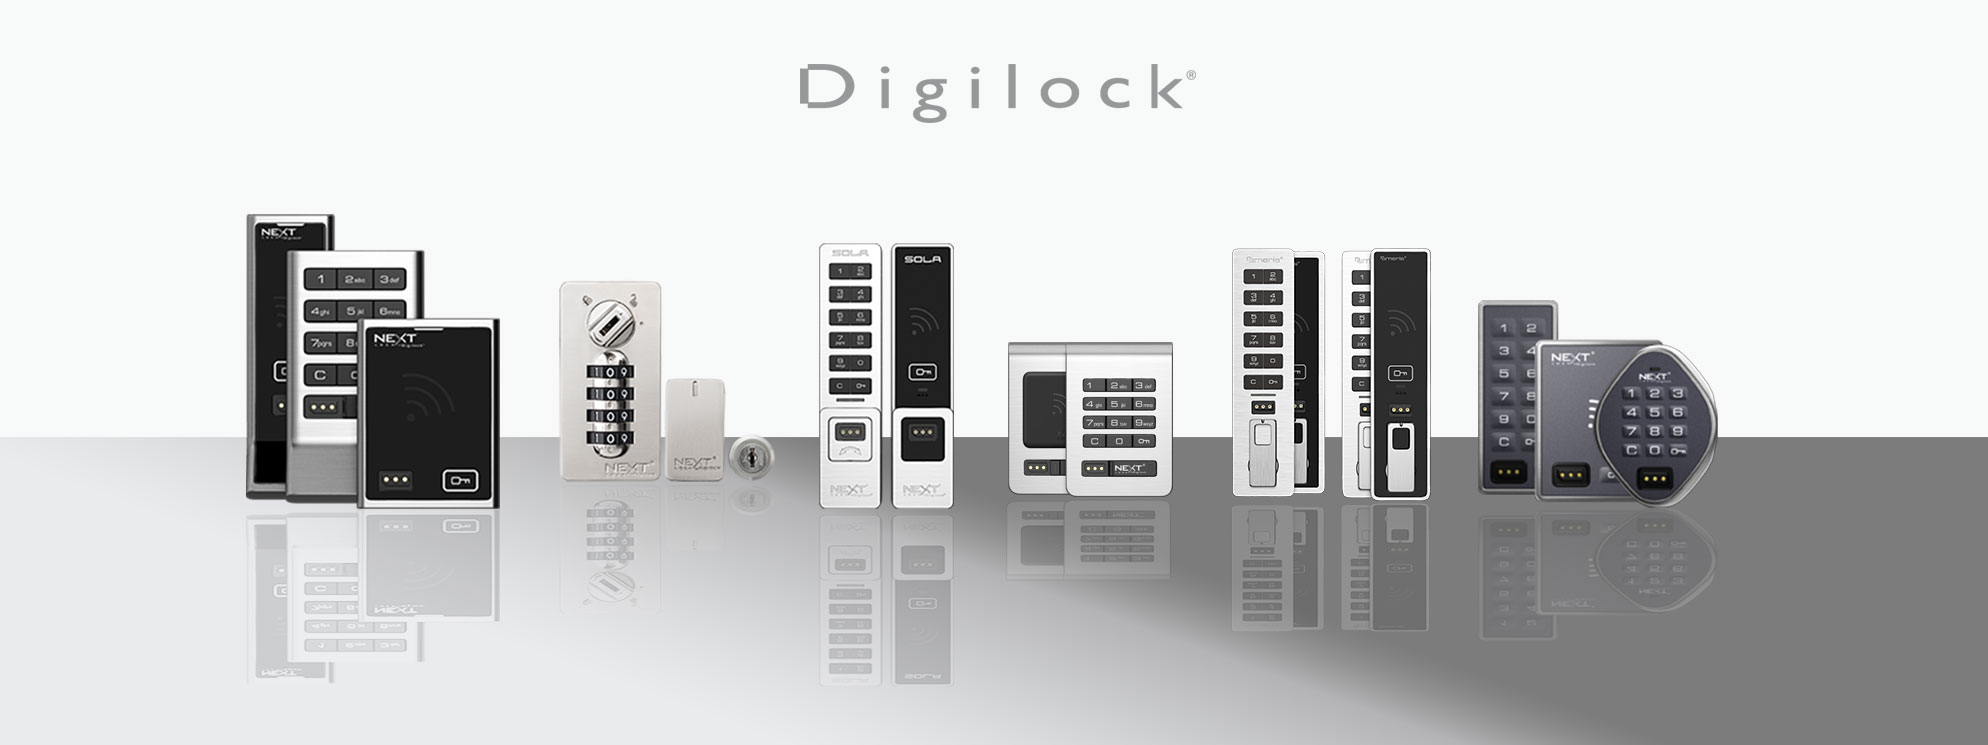 digilock